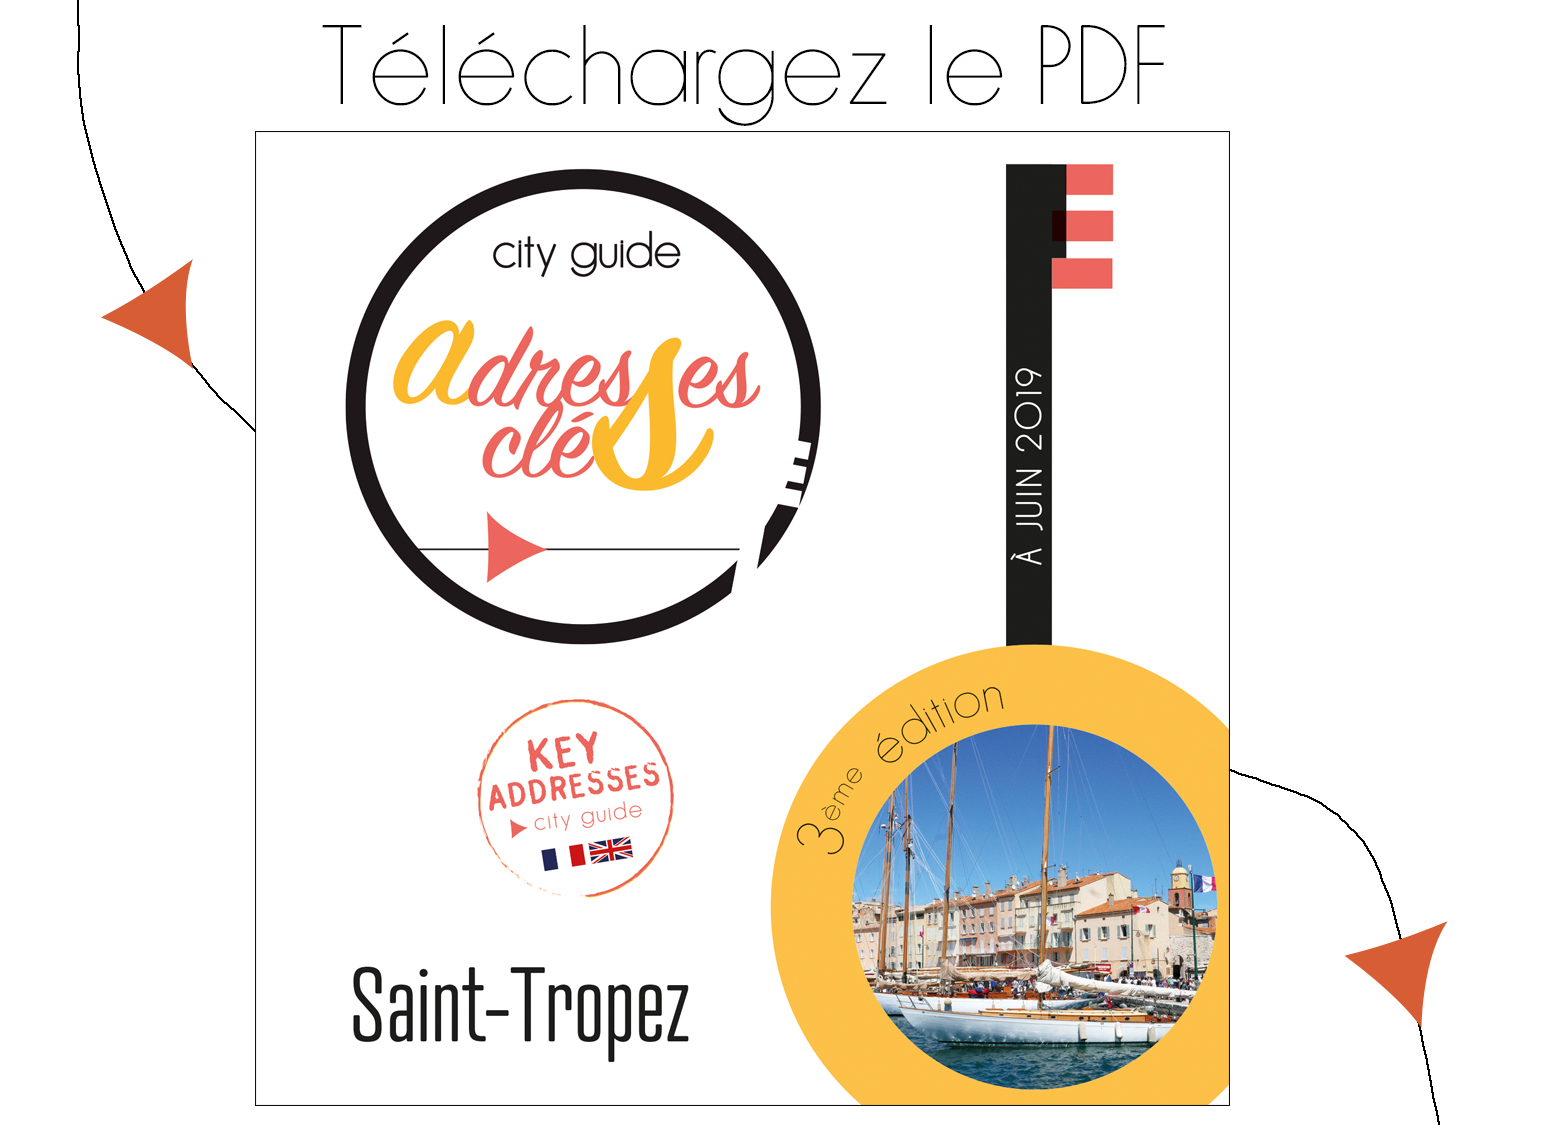 City guide Adresses Clés de Saint-Tropez 2018-2019